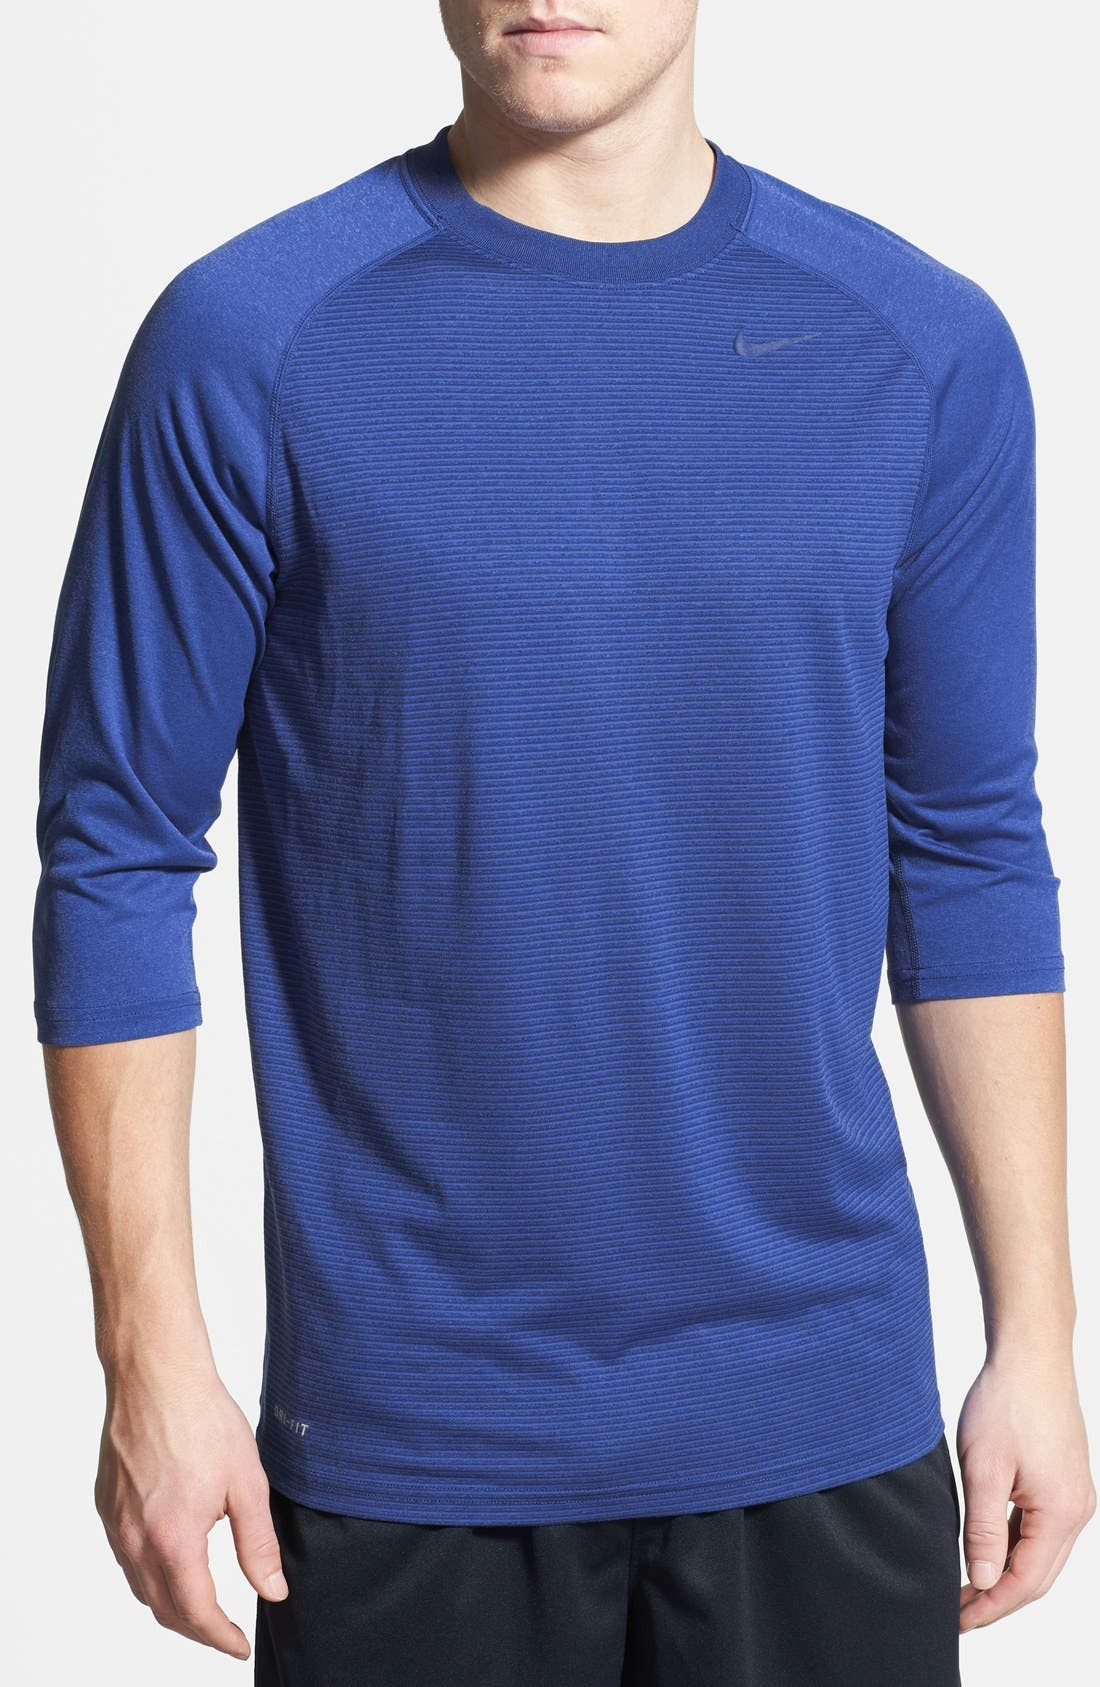 Main Image - Nike Dri-FIT Three Quarter Length Raglan Sleeve T-Shirt